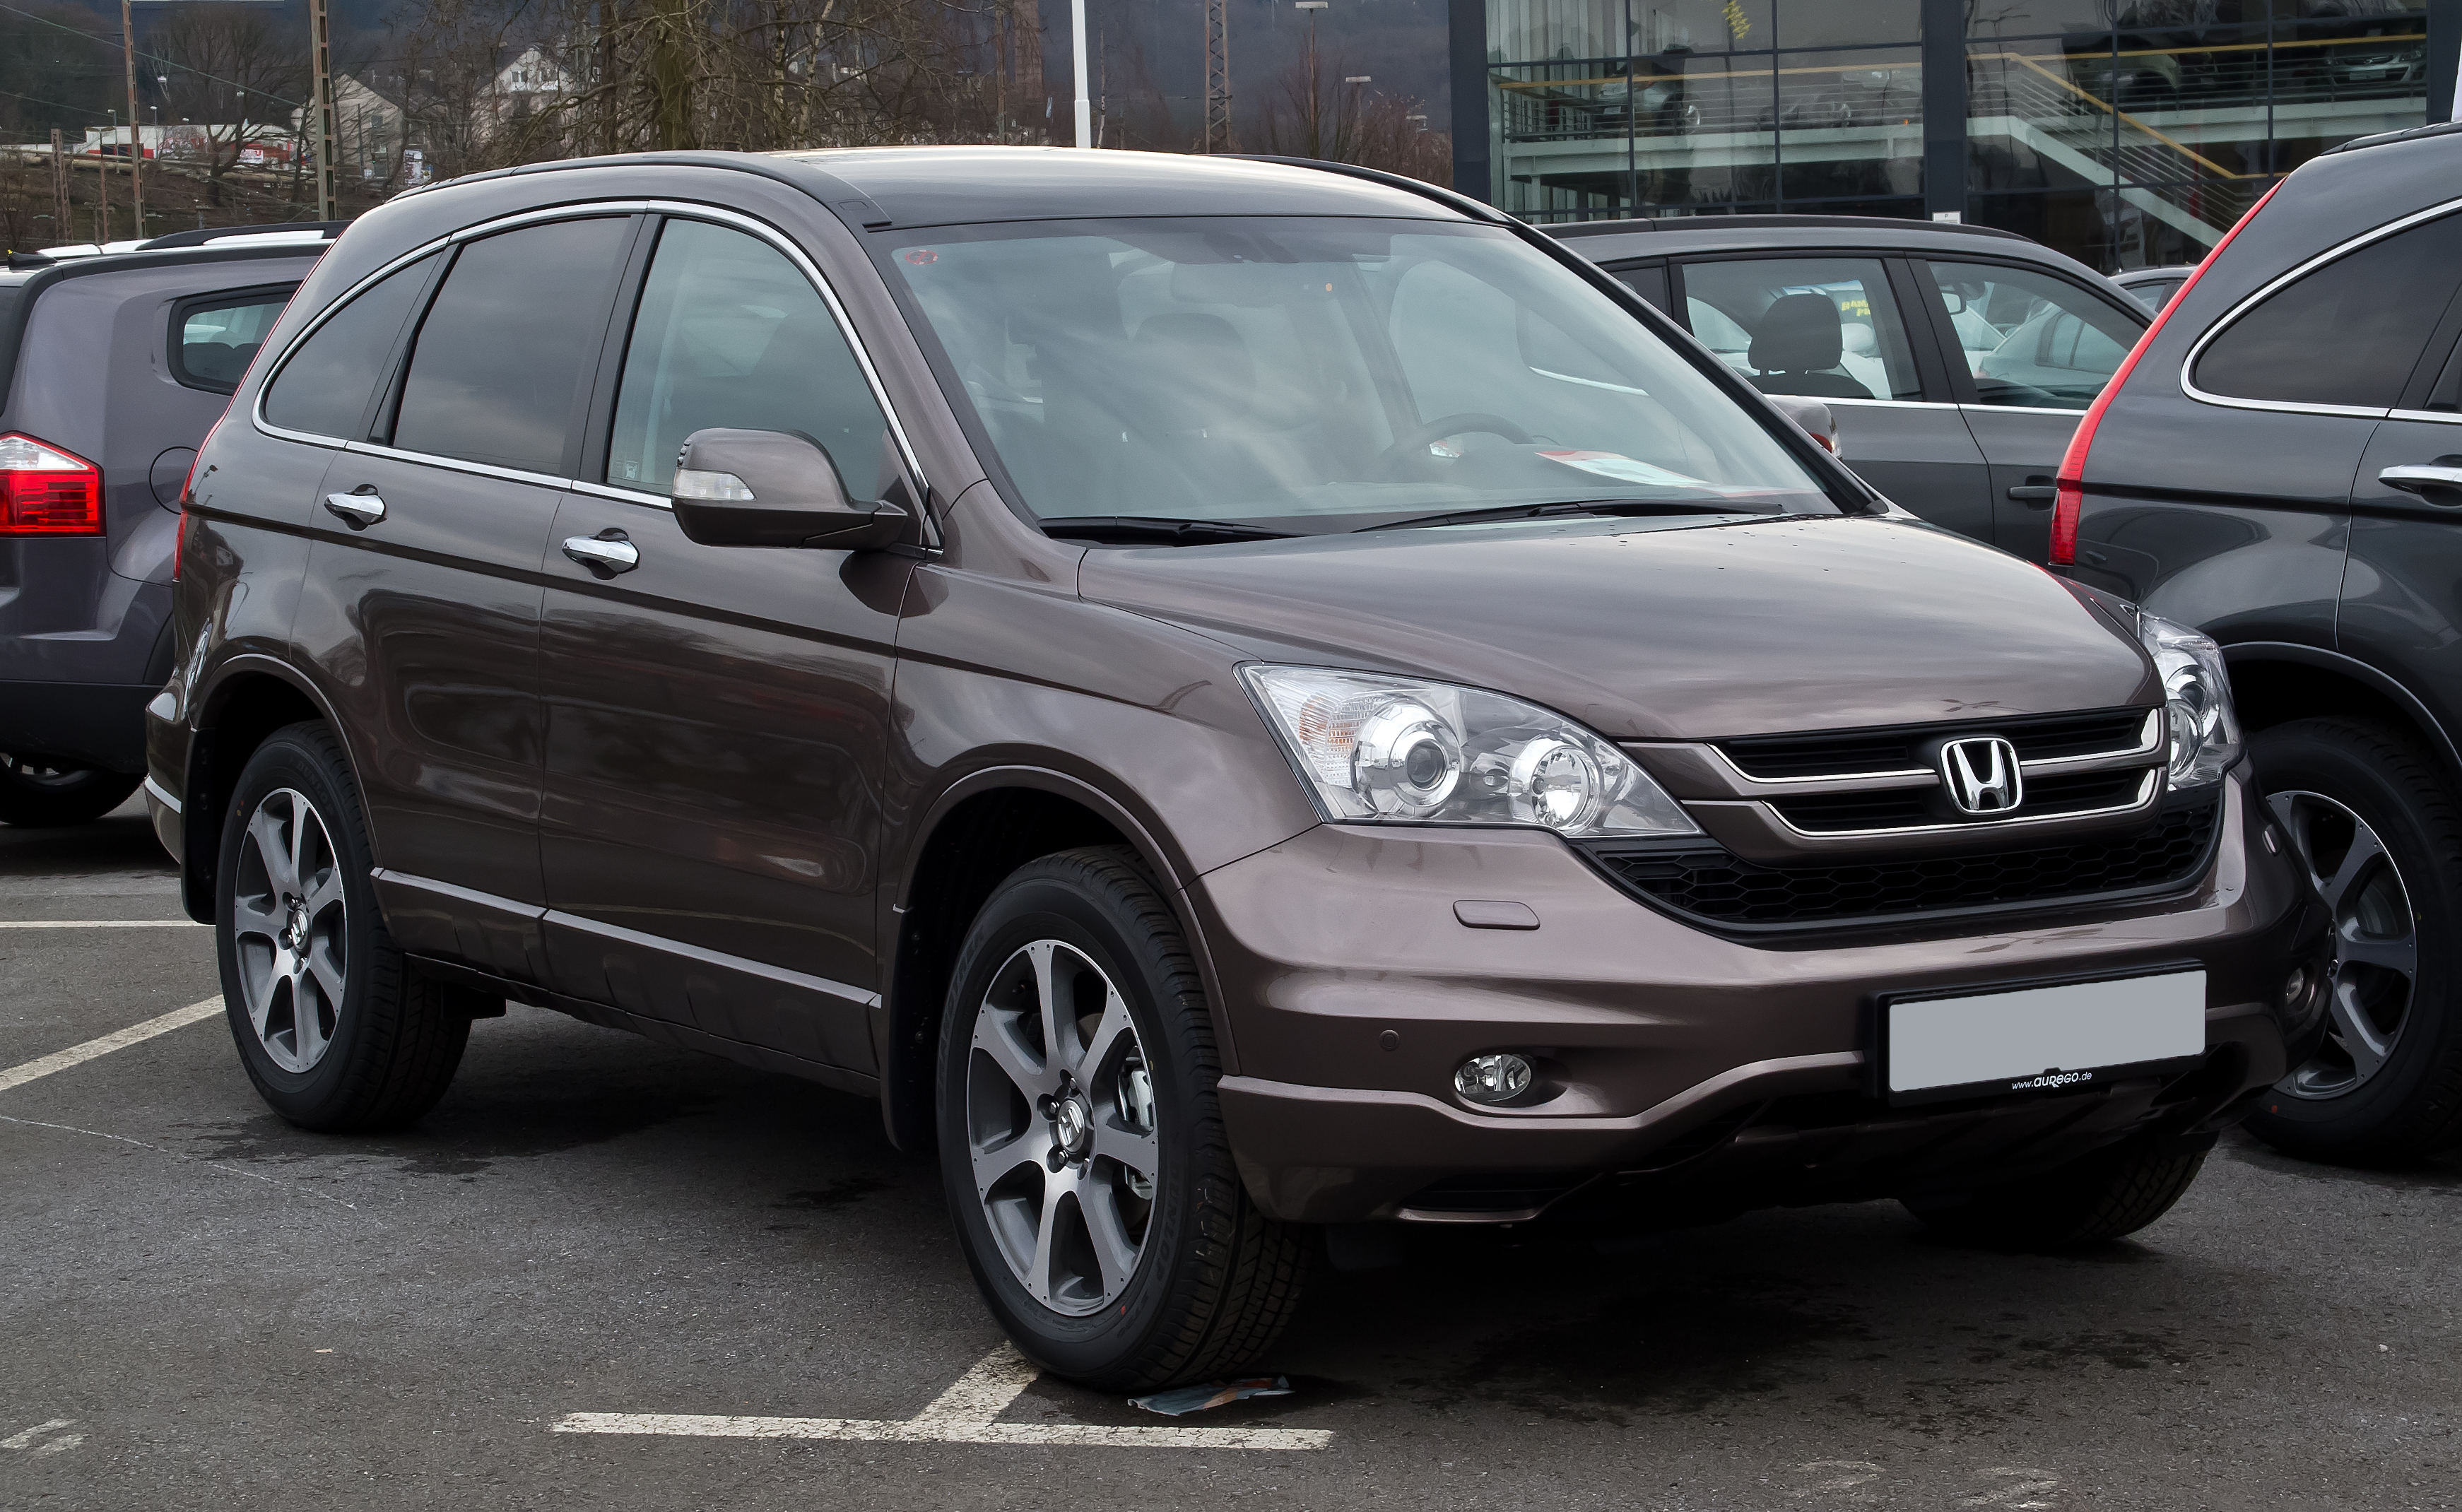 capsule crv v cr truth review honda about cars the rear touring